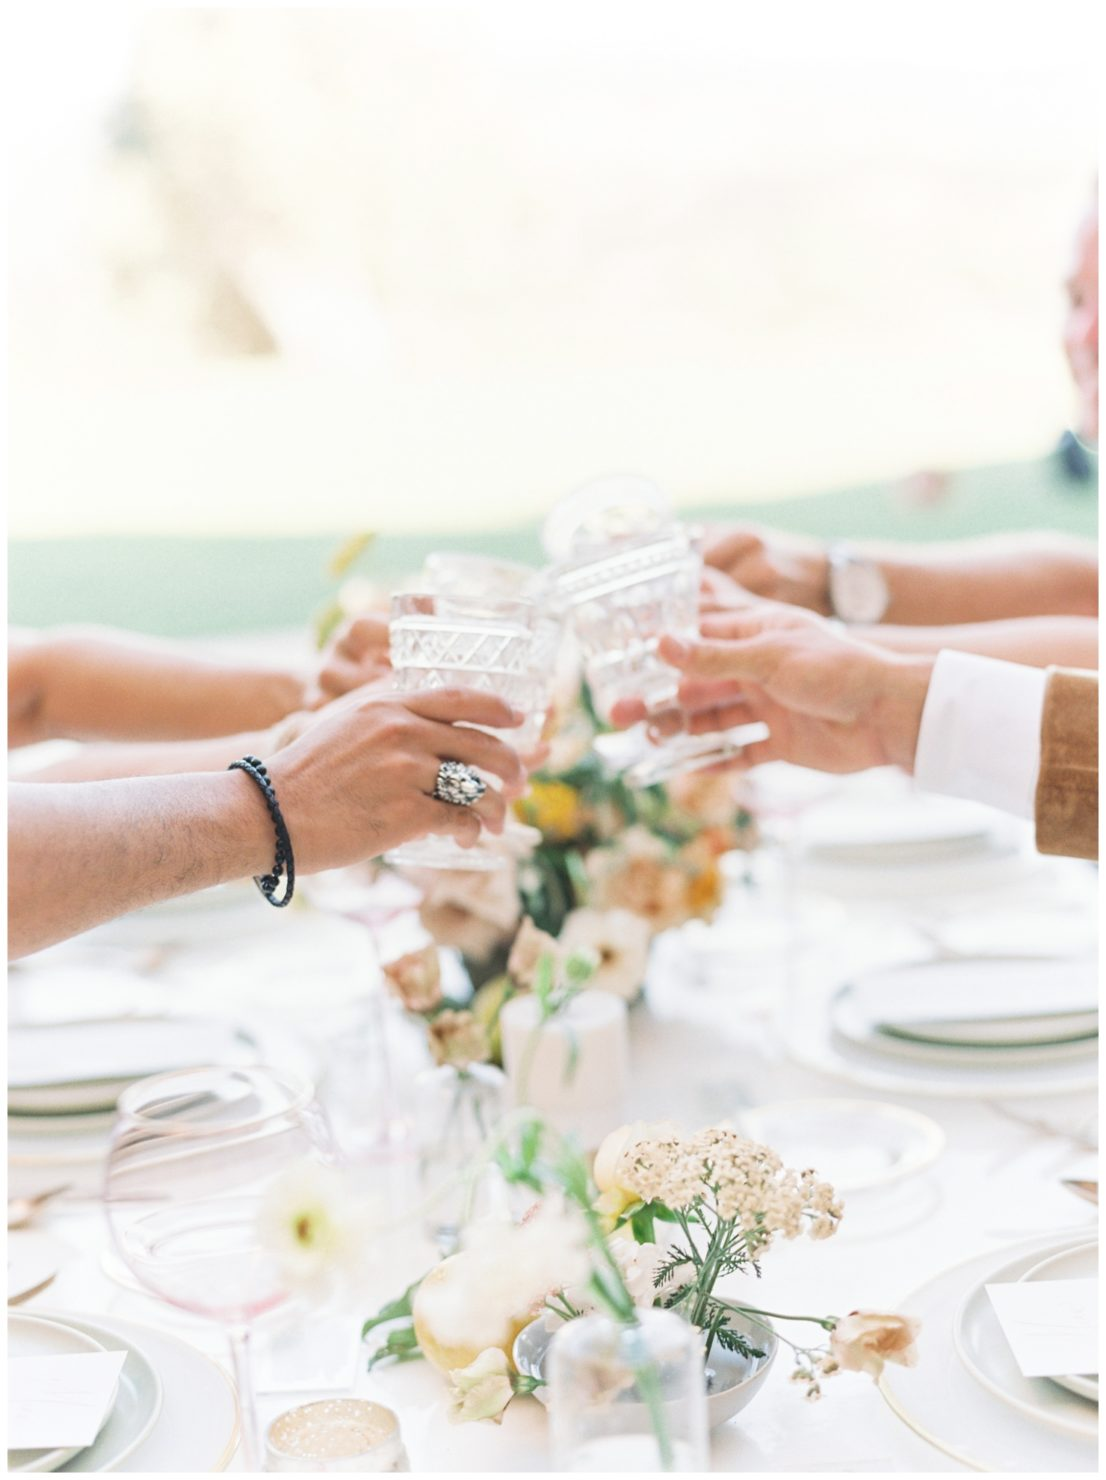 Stylish And Summery Wedding At A Winery In Greece Table Setting